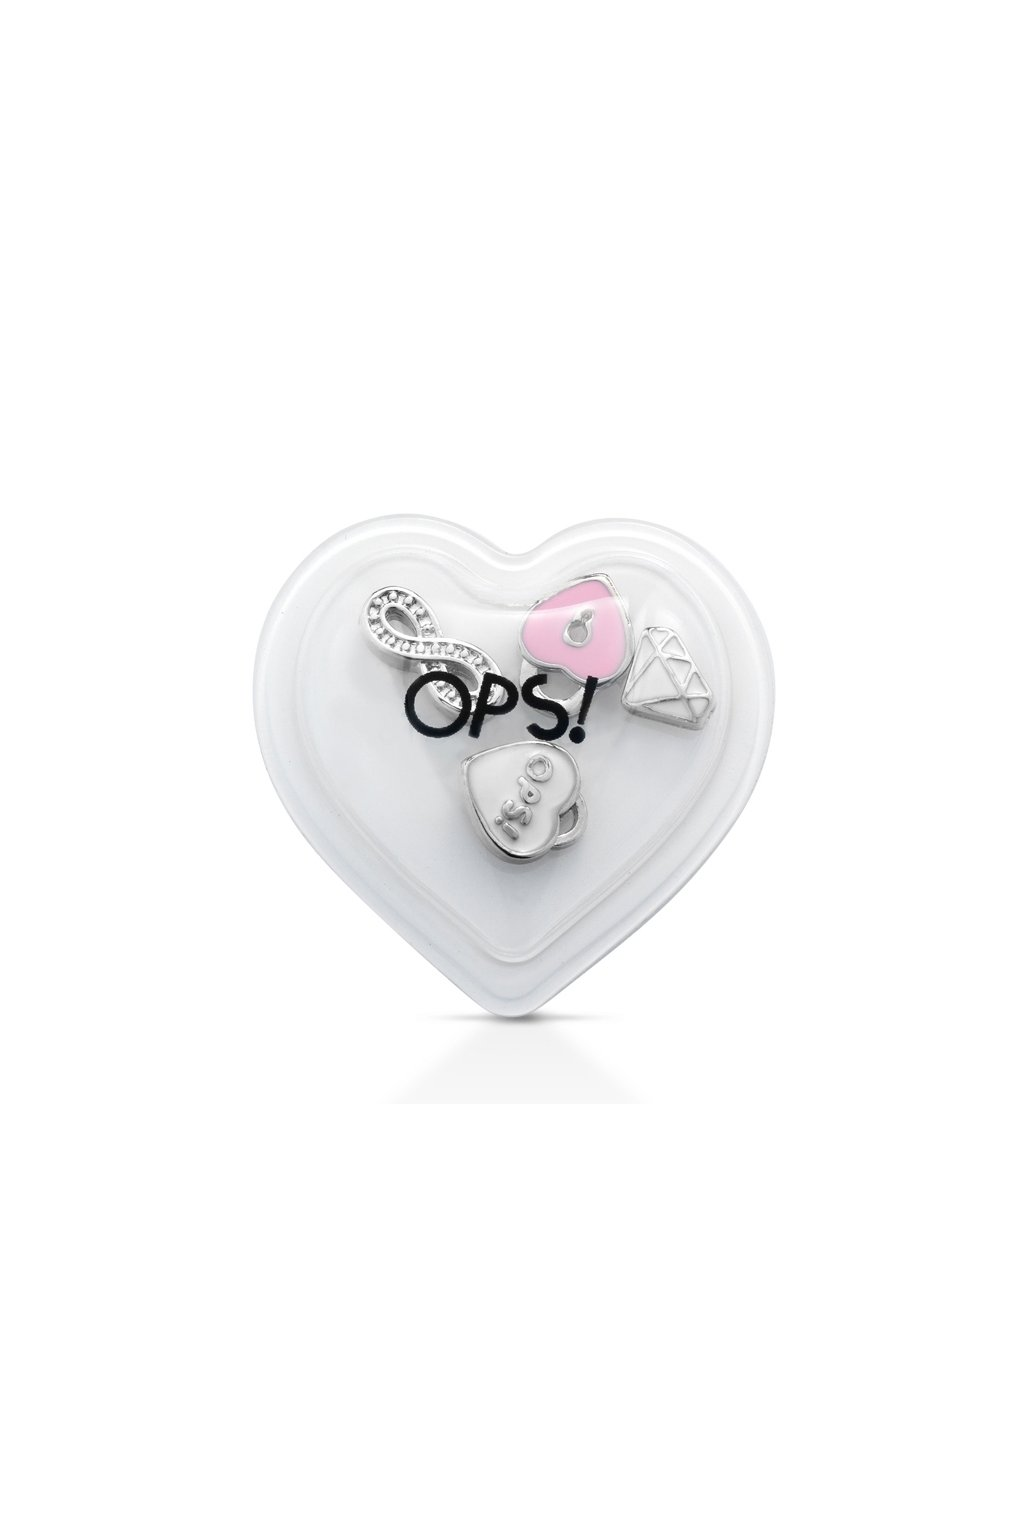 ops objects mini pop ozdoby e my ops love diamant A